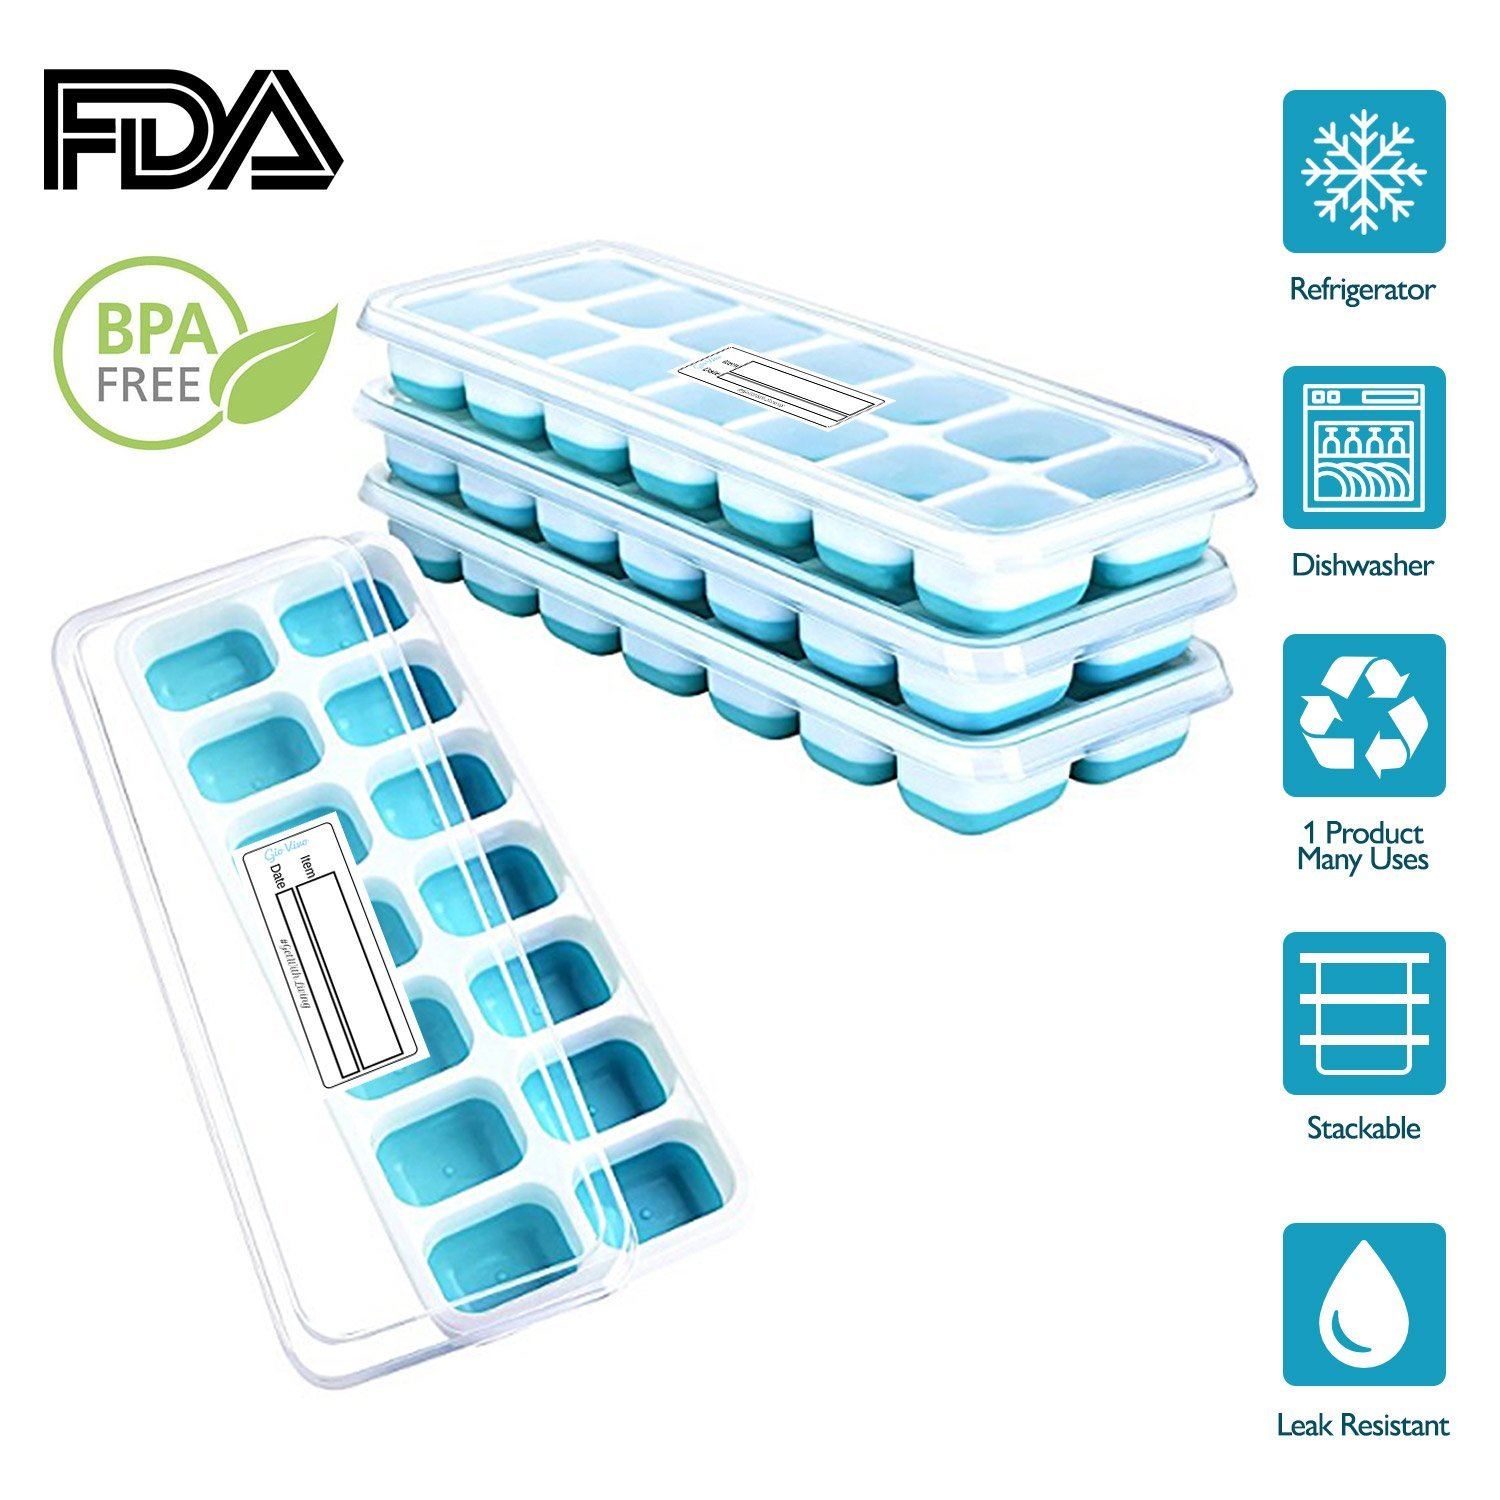 4 in 1 Set of 4 Ice Cube Trays, Easy-Release, 14 mould Tray with Easy Release cubes, Removable Lid, LFGB Certified, BPA Free, Stackable, Durable and Dishwasher Safe, 60 Days